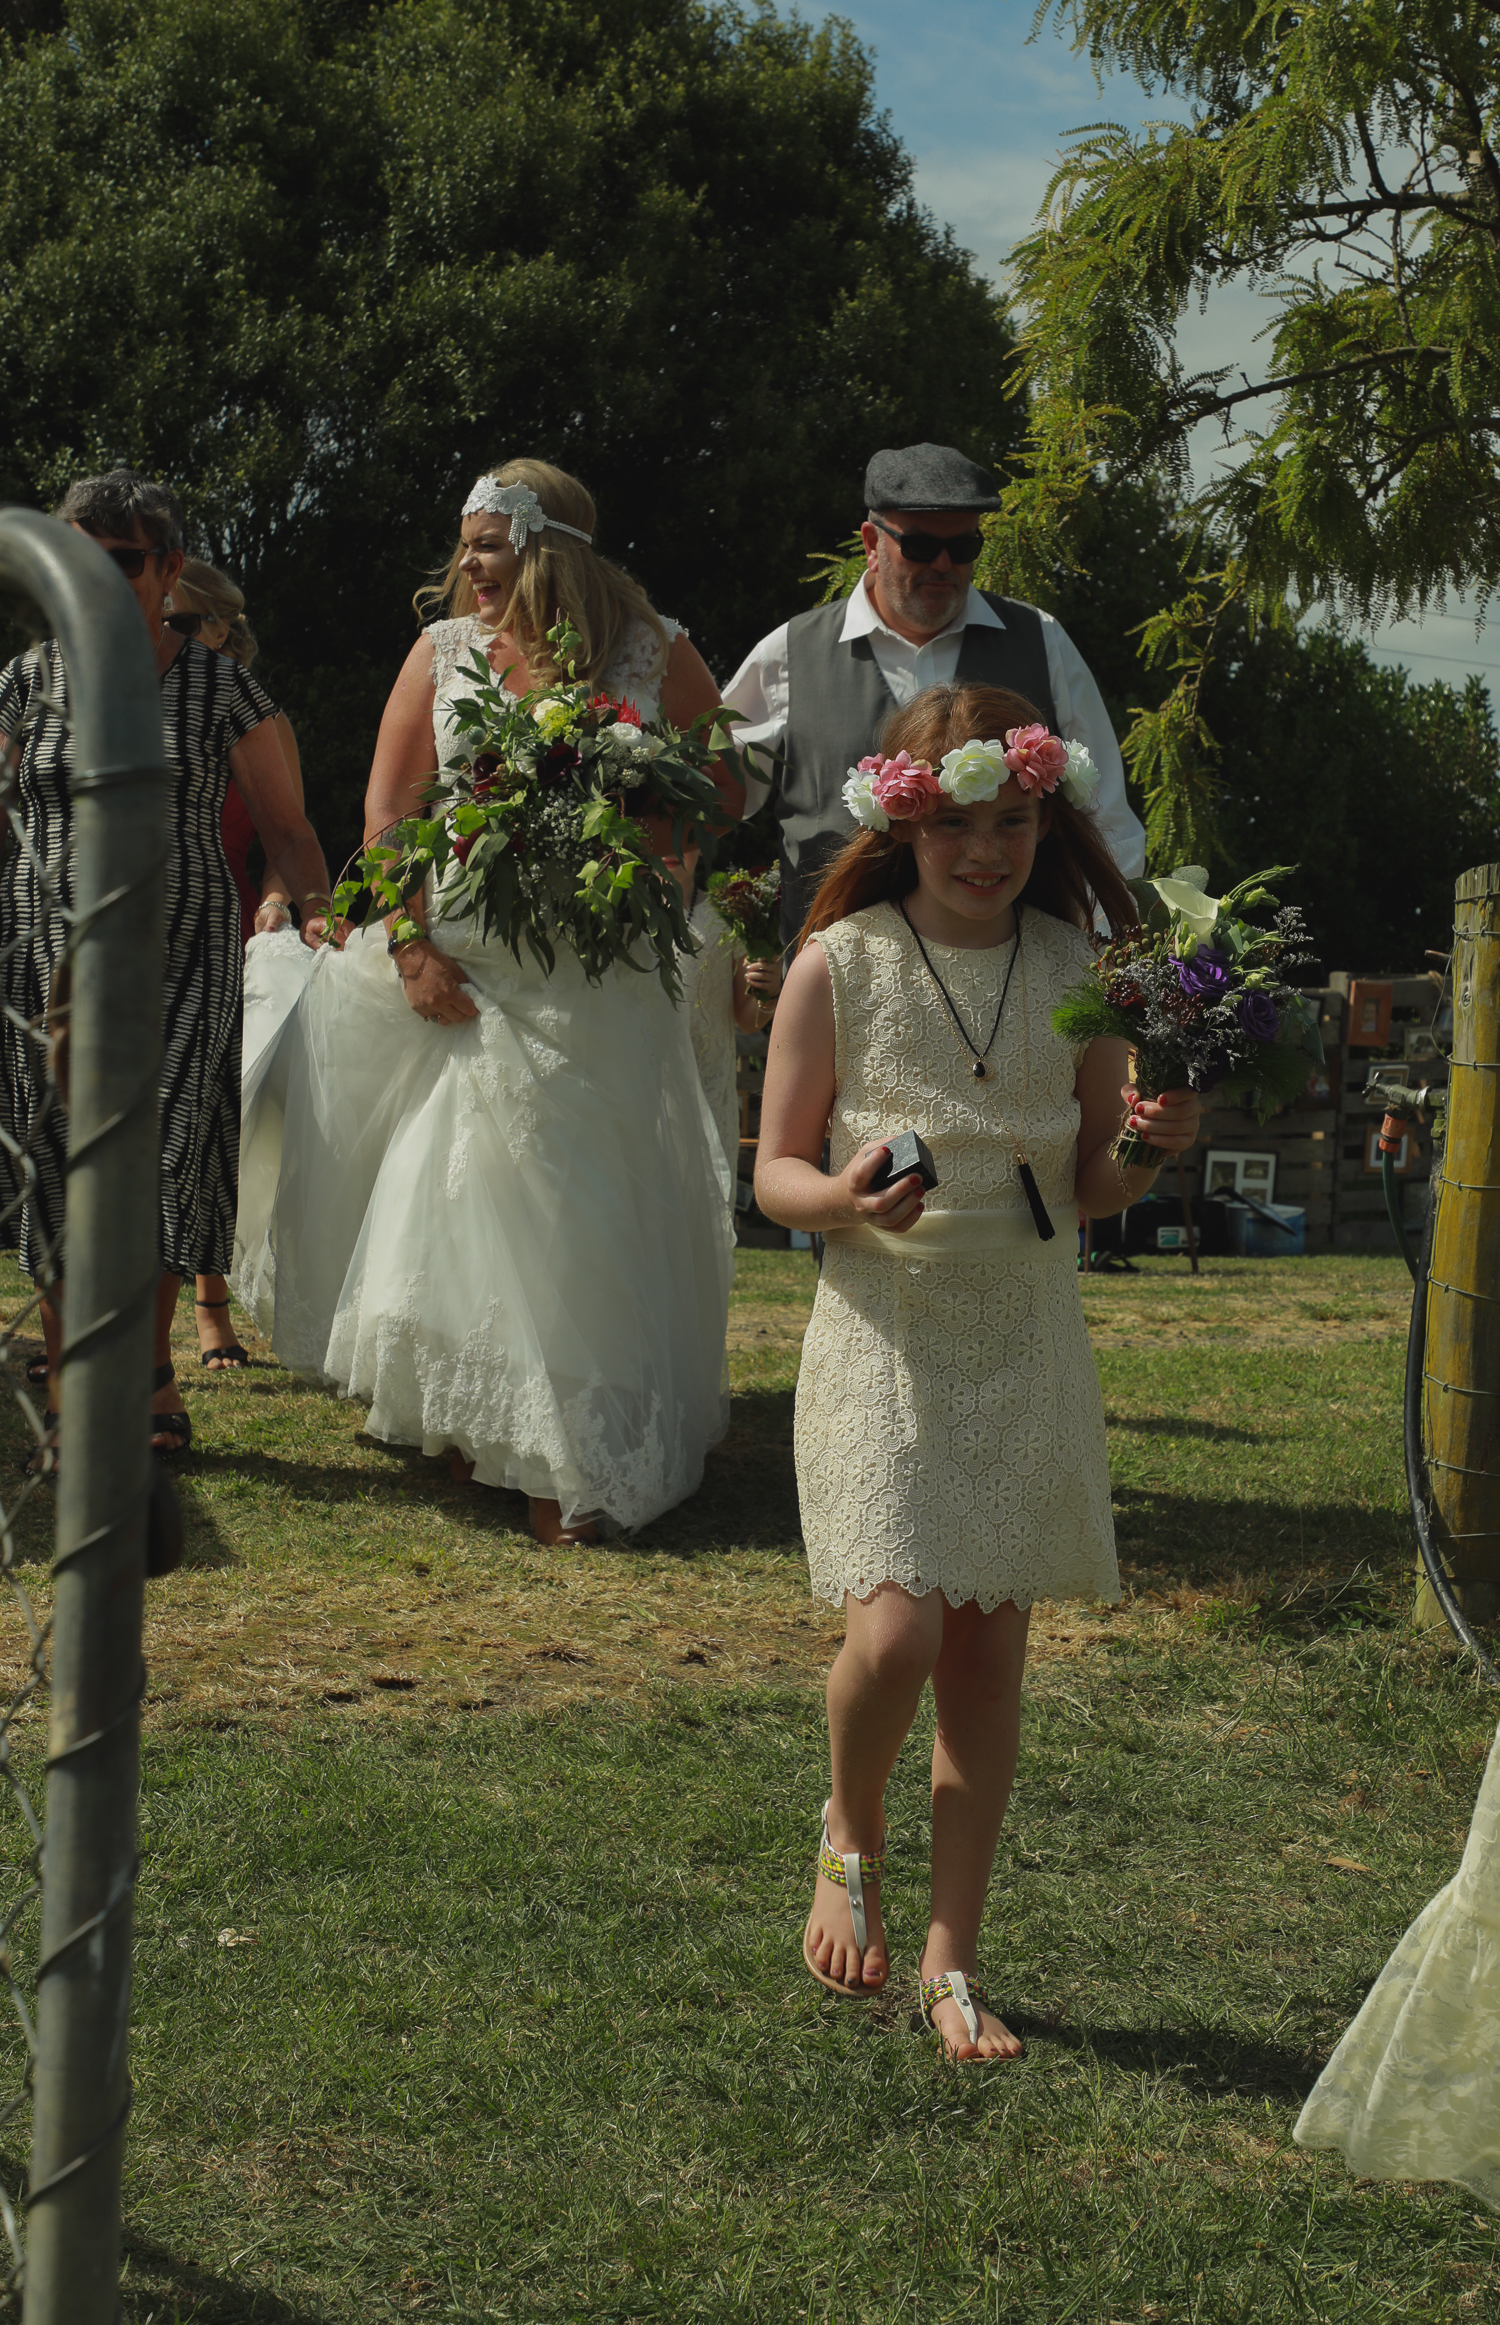 wedding-photography-flower-girls-and-bride-walking-into-ceremony.jpg